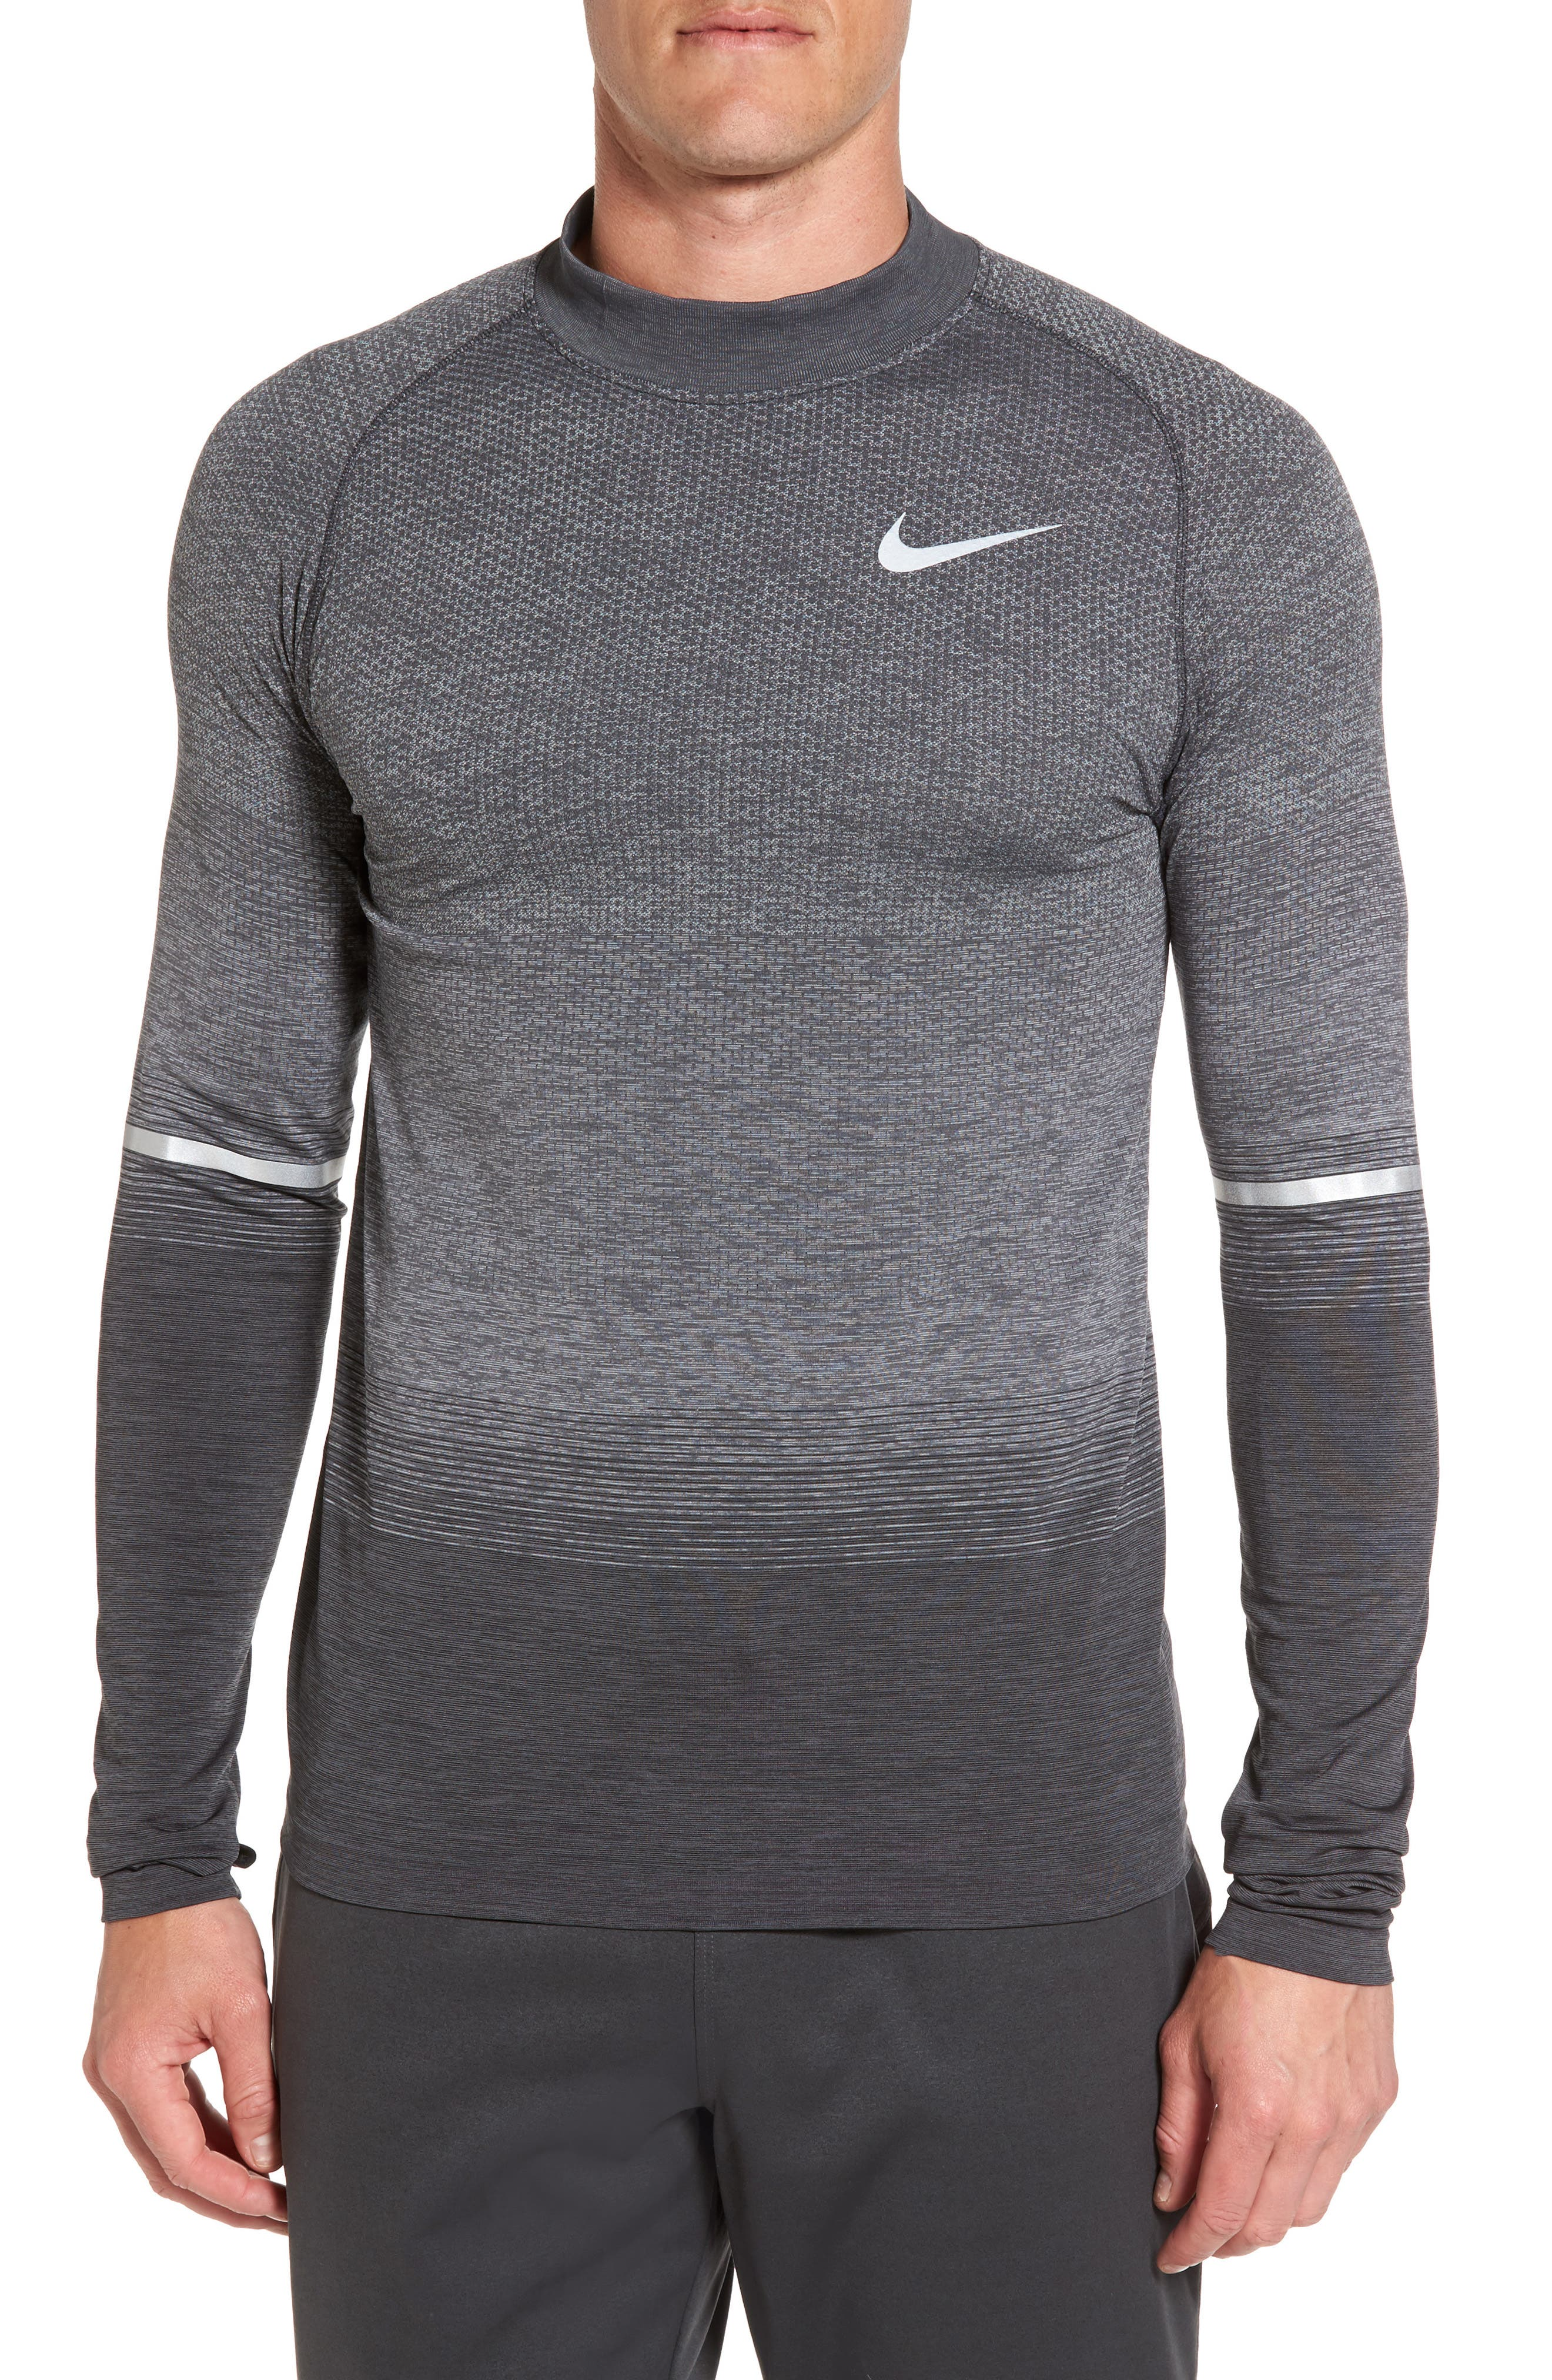 Dry Running Mock Neck Long Sleeve T-Shirt,                             Main thumbnail 1, color,                             ANTHRACITE/ WOLF GREY/ GREY